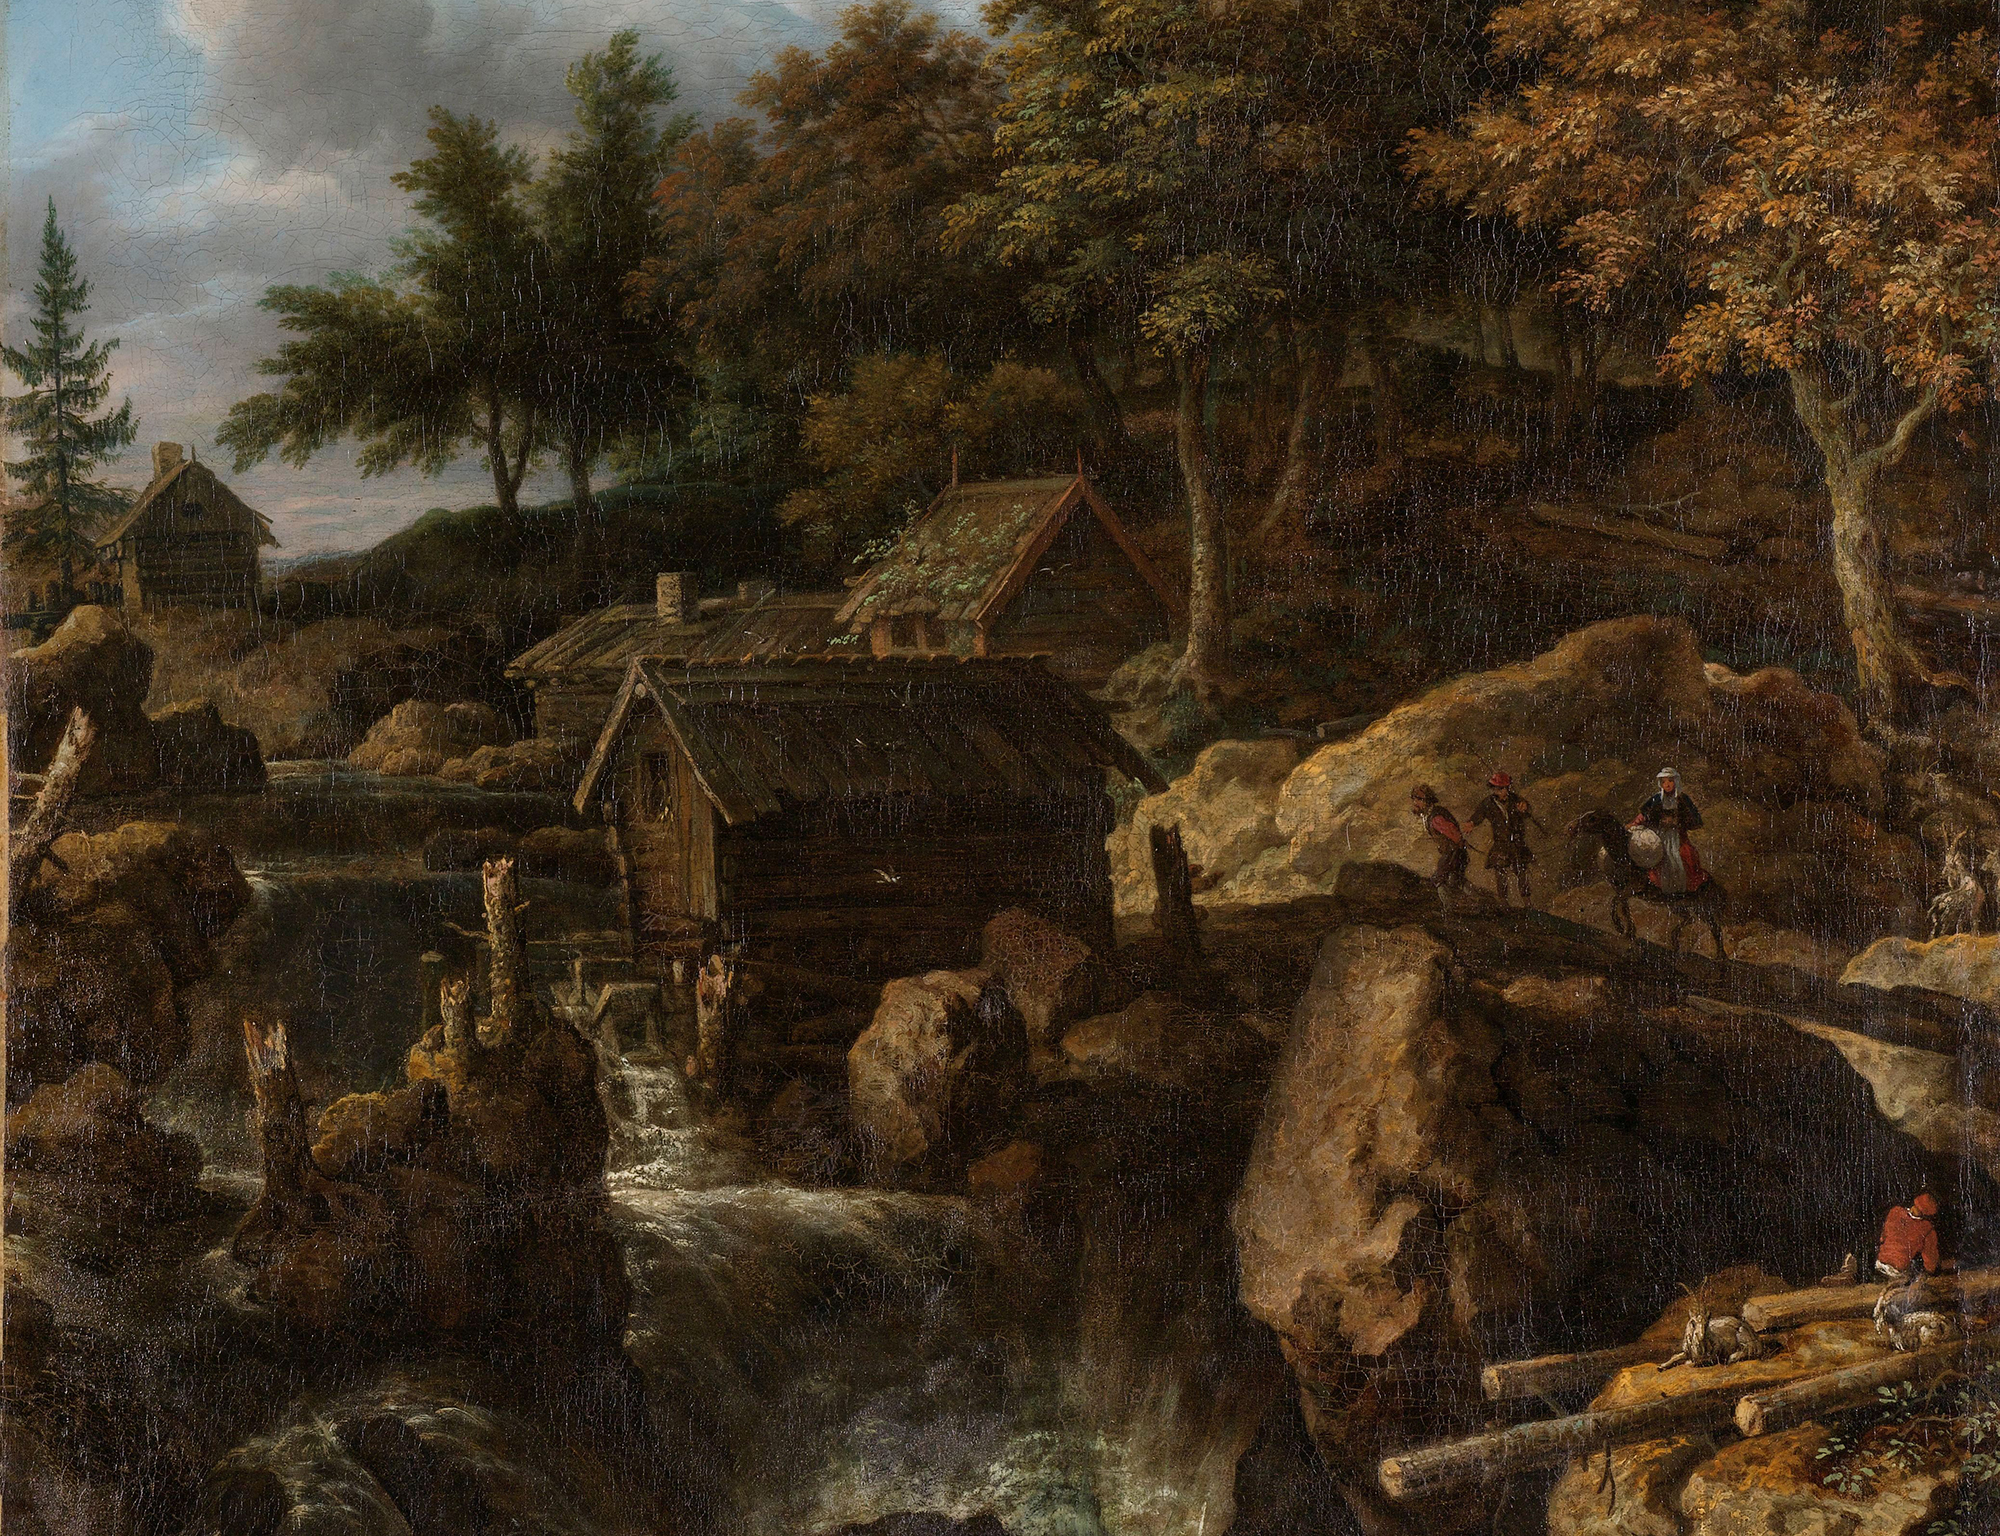 Sensible Natures Allart Van Everdingen And The Tradition Of Sublime Landscape In Seventeenth Century Dutch Painting Journal Of Historians Of